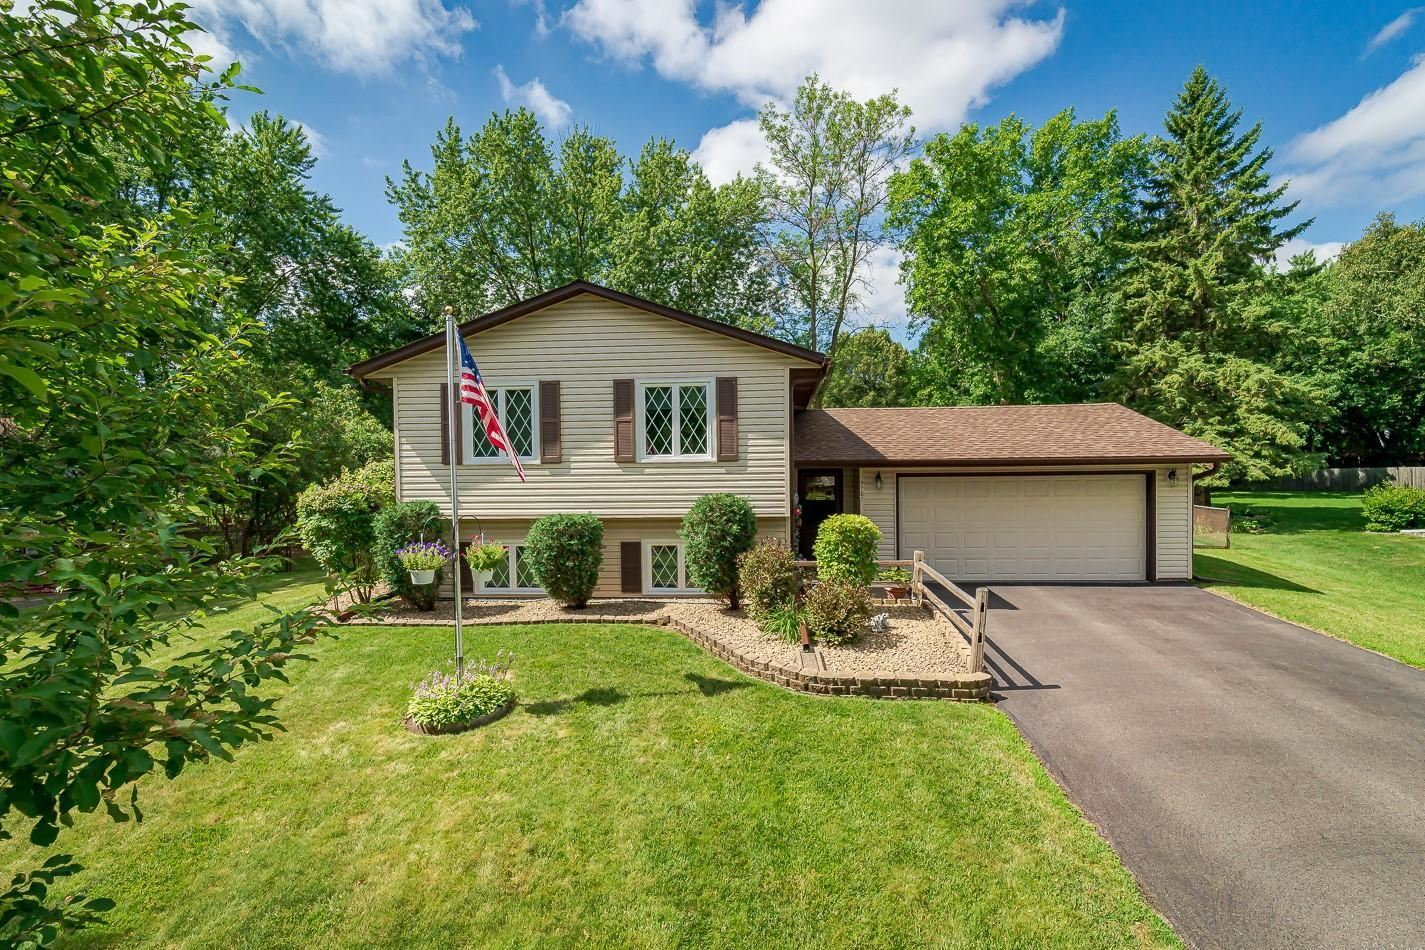 9787 103rd Place N, Maple Grove, MN 55369 - MLS#: 5628345